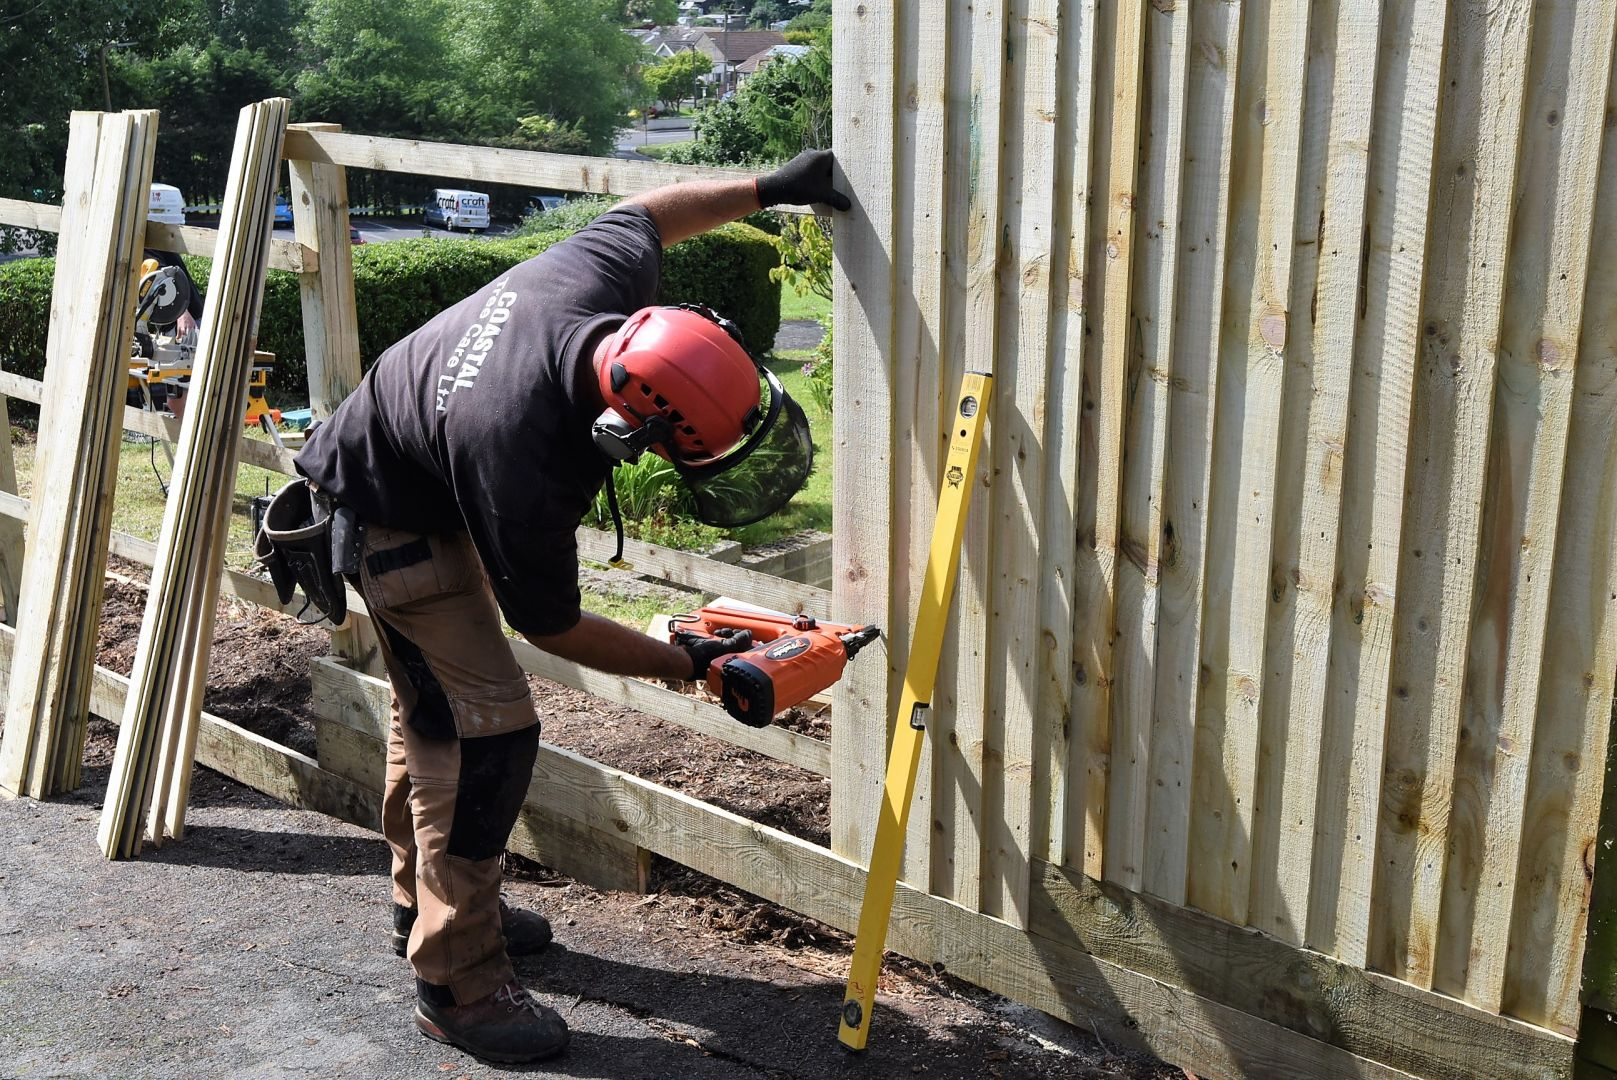 fencing, featherboard, Weymouth, Weymouth fencing, fencing specialists,Weymouth fencing specialists